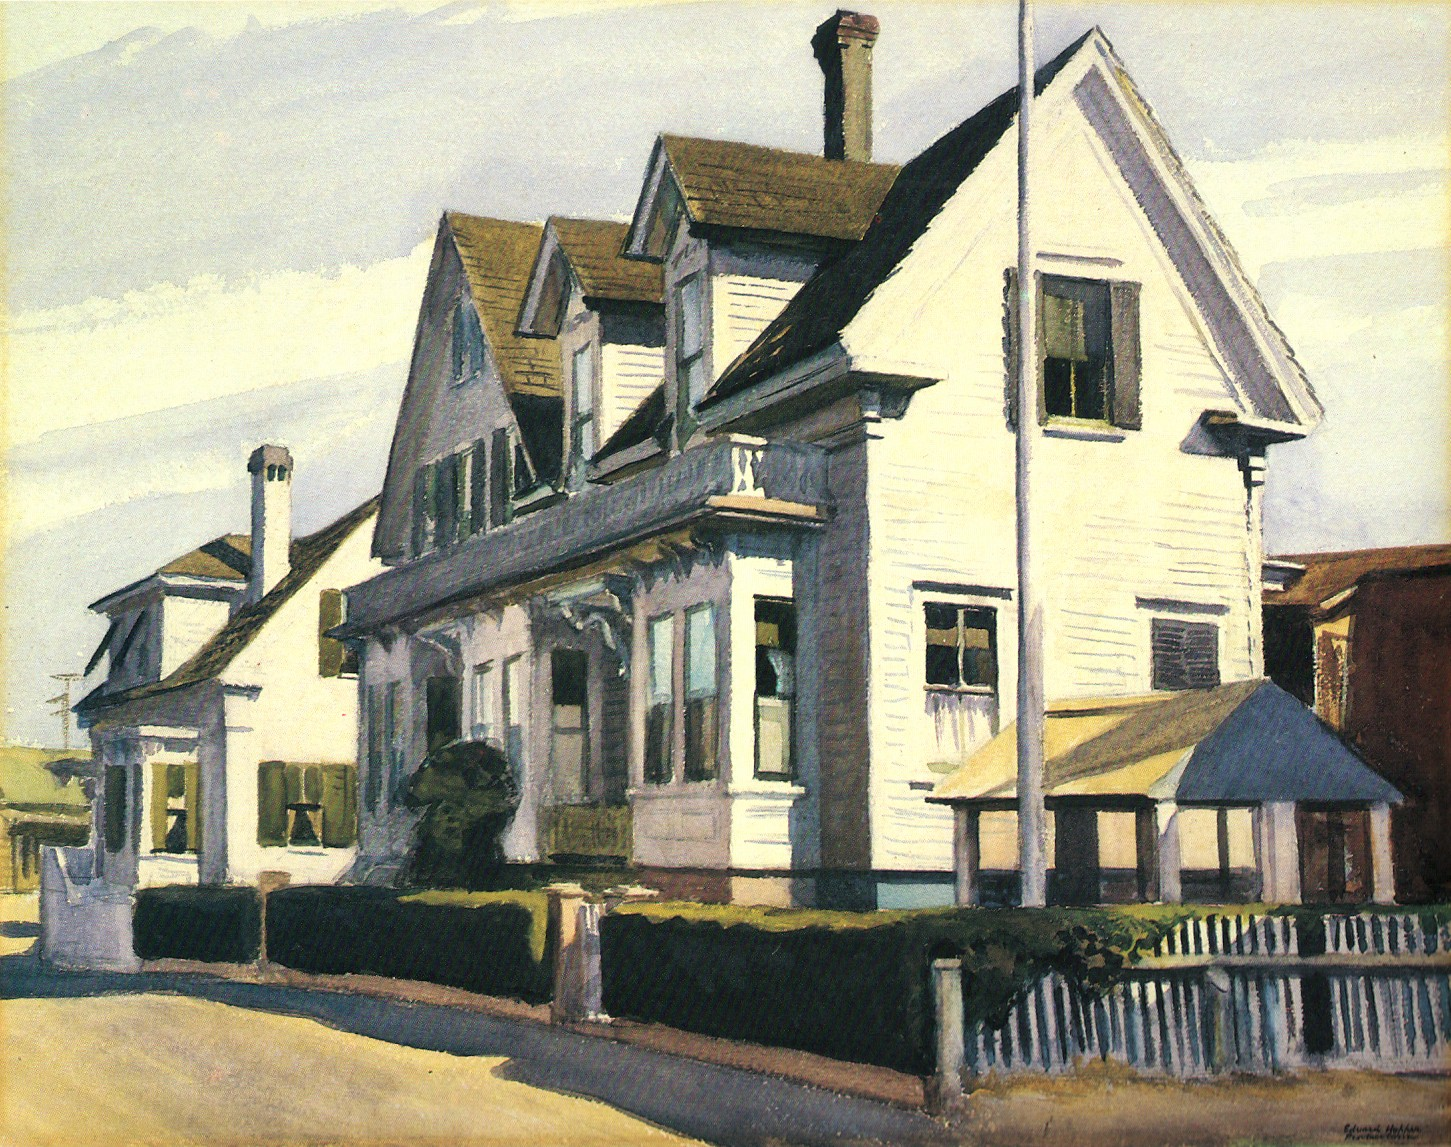 House in Provincetown (1930), Edward Hopper